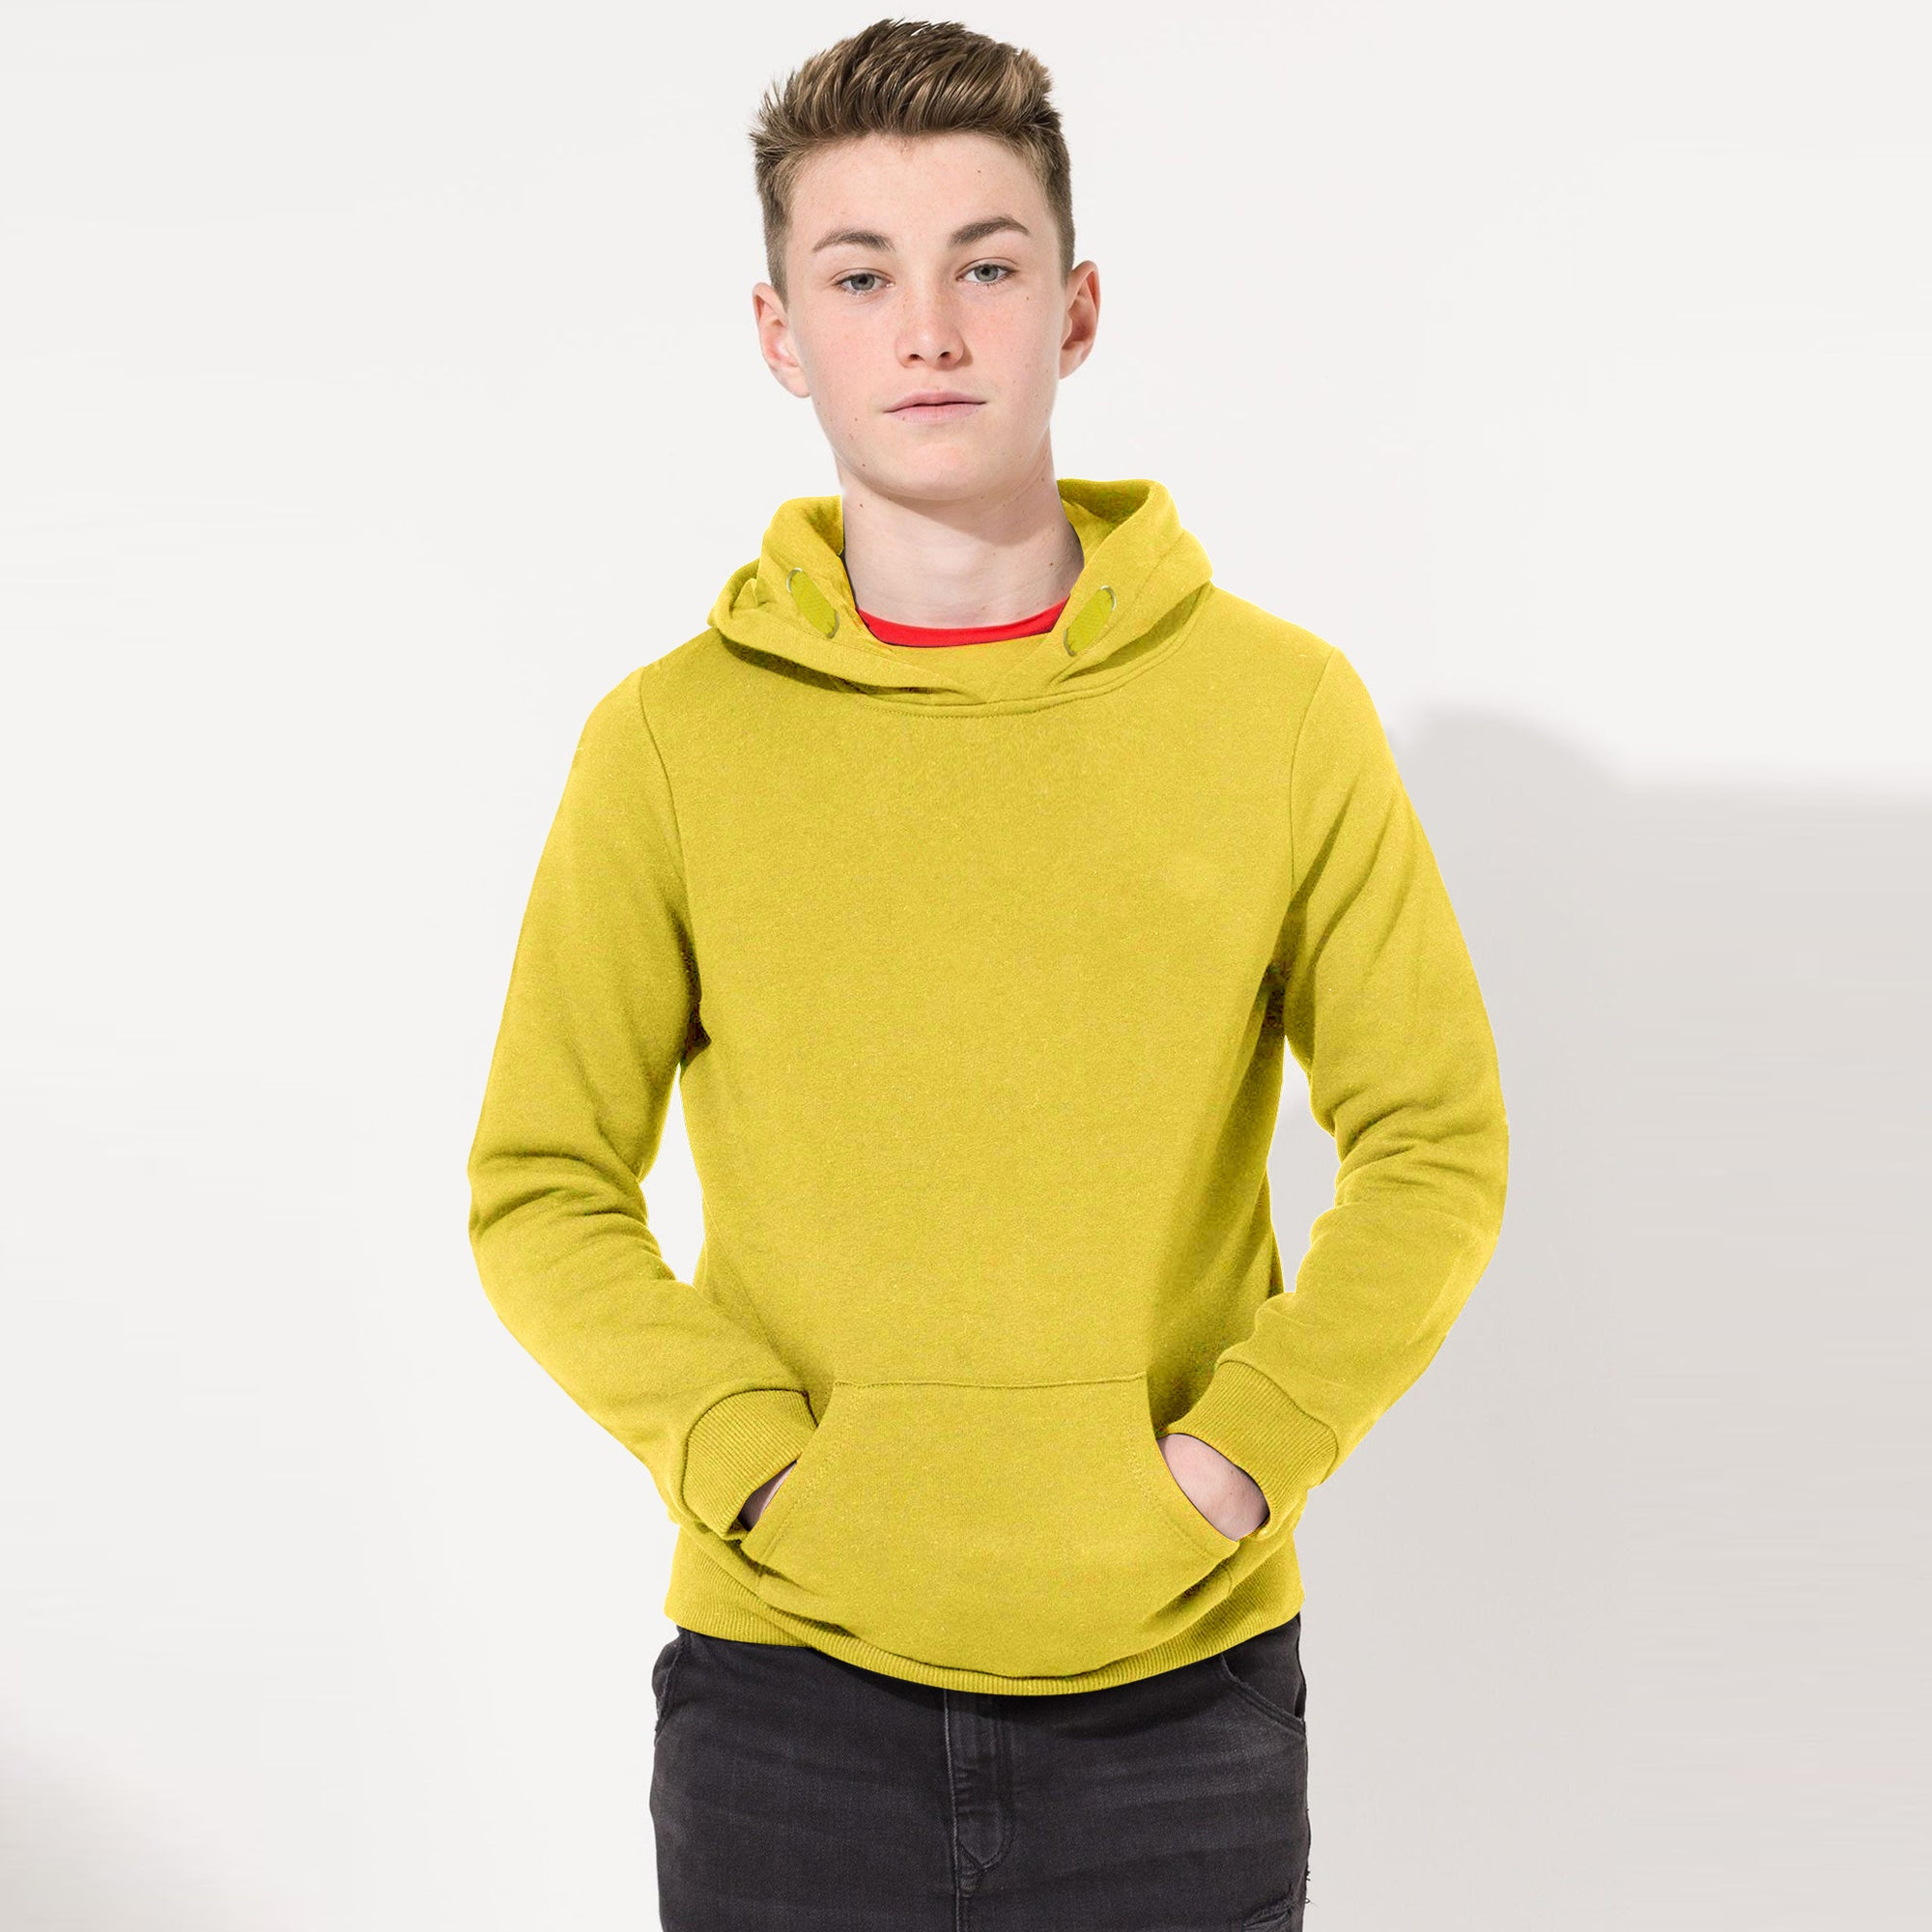 Next Terry Fleece Pullover Solid Hoodie For Kids-Light Lime Yellow-SP827